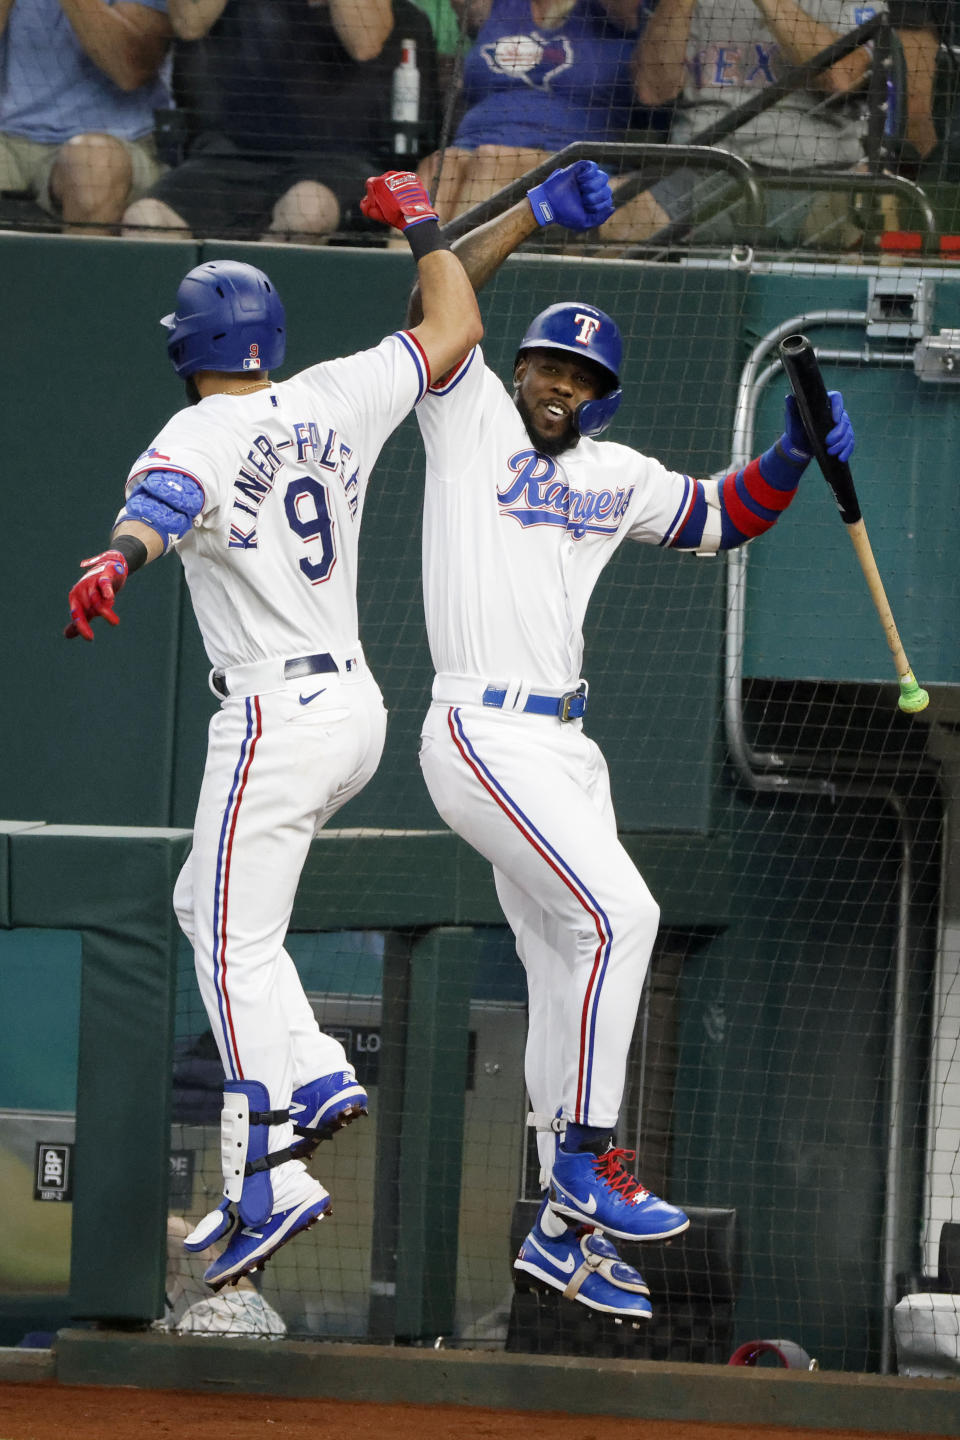 Texas Rangers' Isiah Kiner-Falefa (9) celebrates his two-run home run against the Minnesota Twins with Adolis Garcia, right, during the third inning of a baseball game Saturday, June 19, 2021, in Arlington, Texas. (AP Photo/Michael Ainsworth)